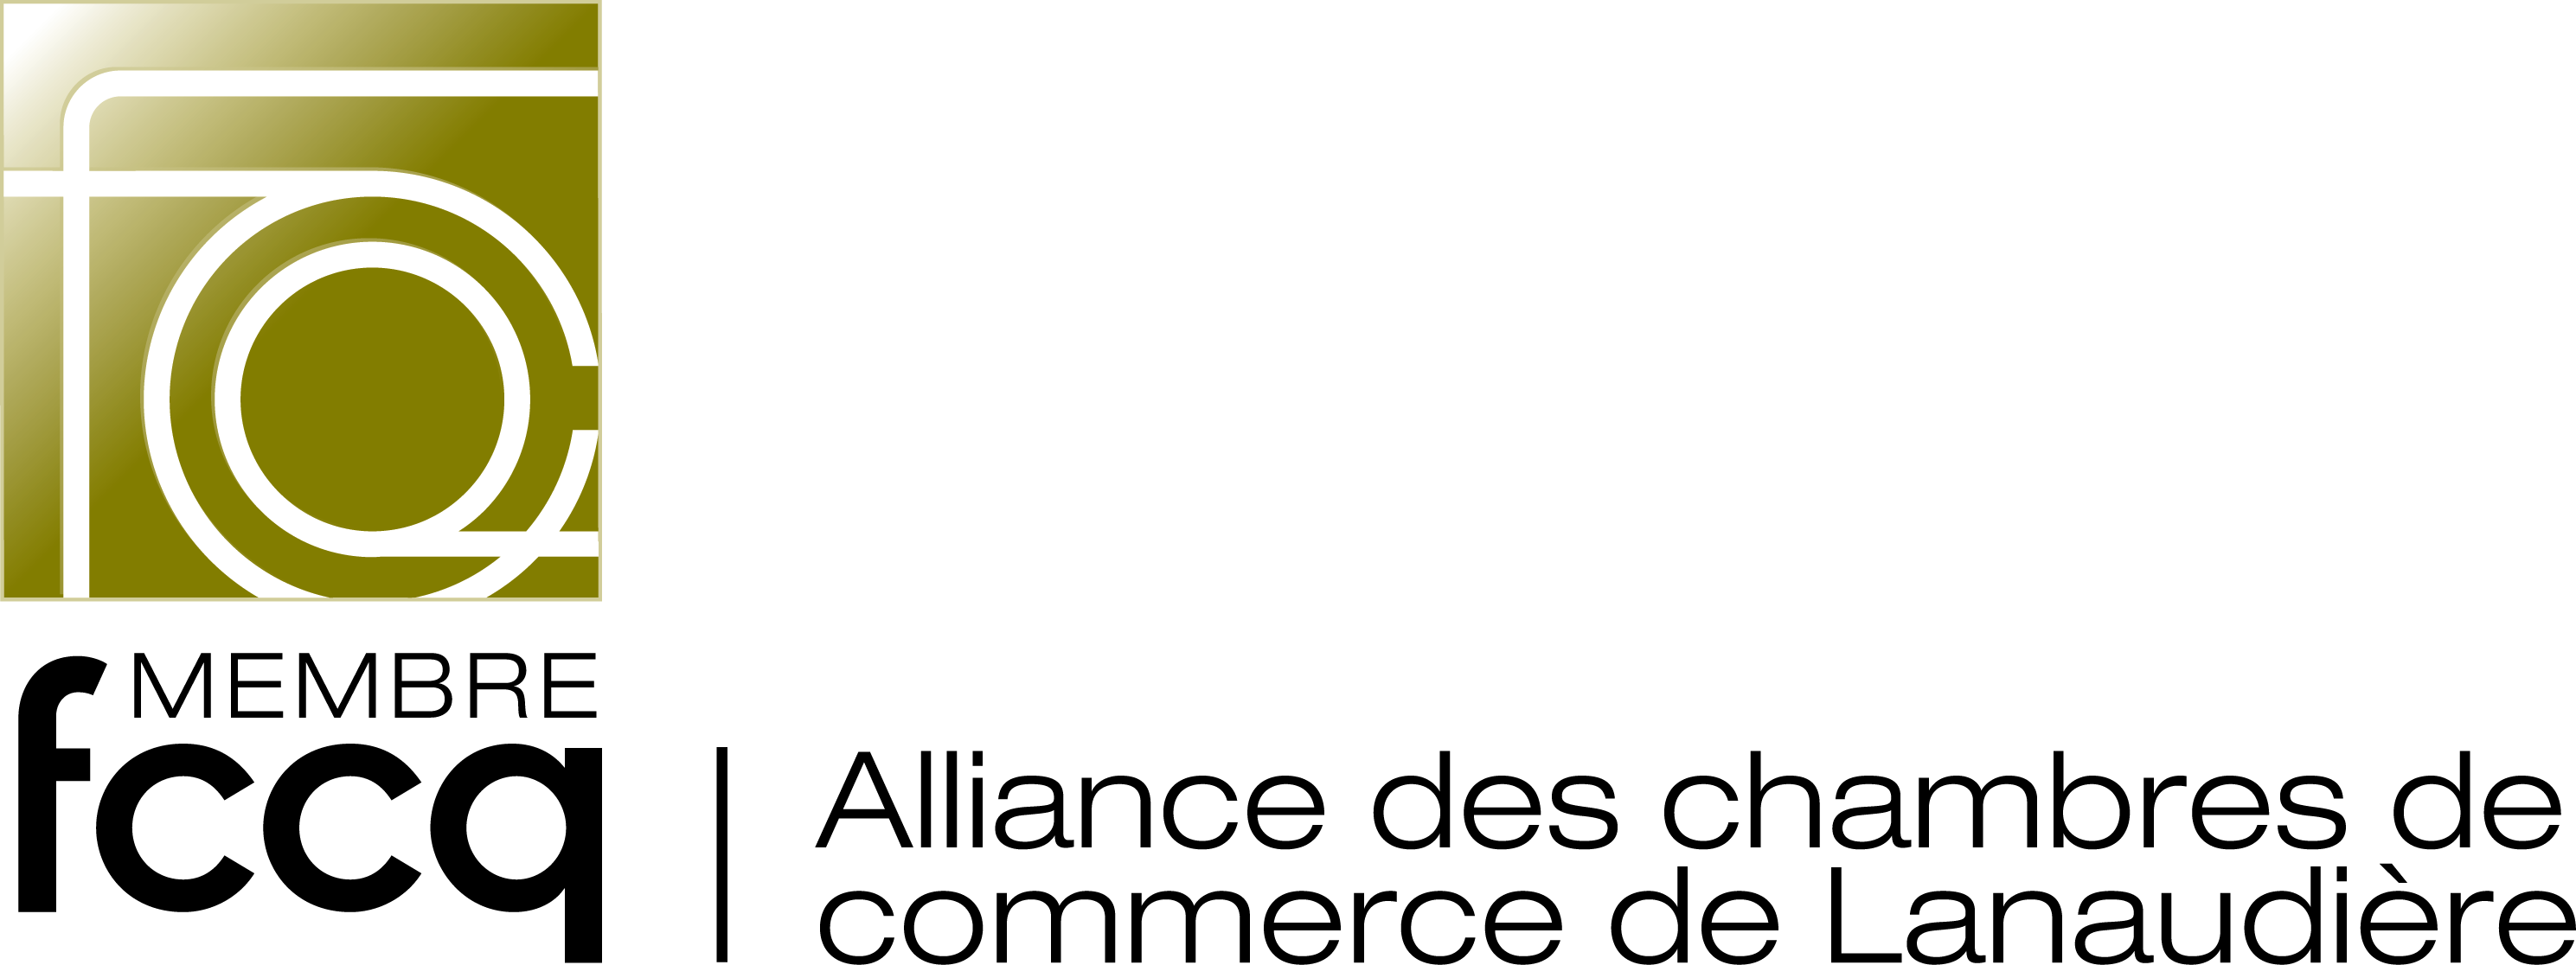 Alliance des chambres de commerce de lanaudi re chambre for Chambre de commerce de